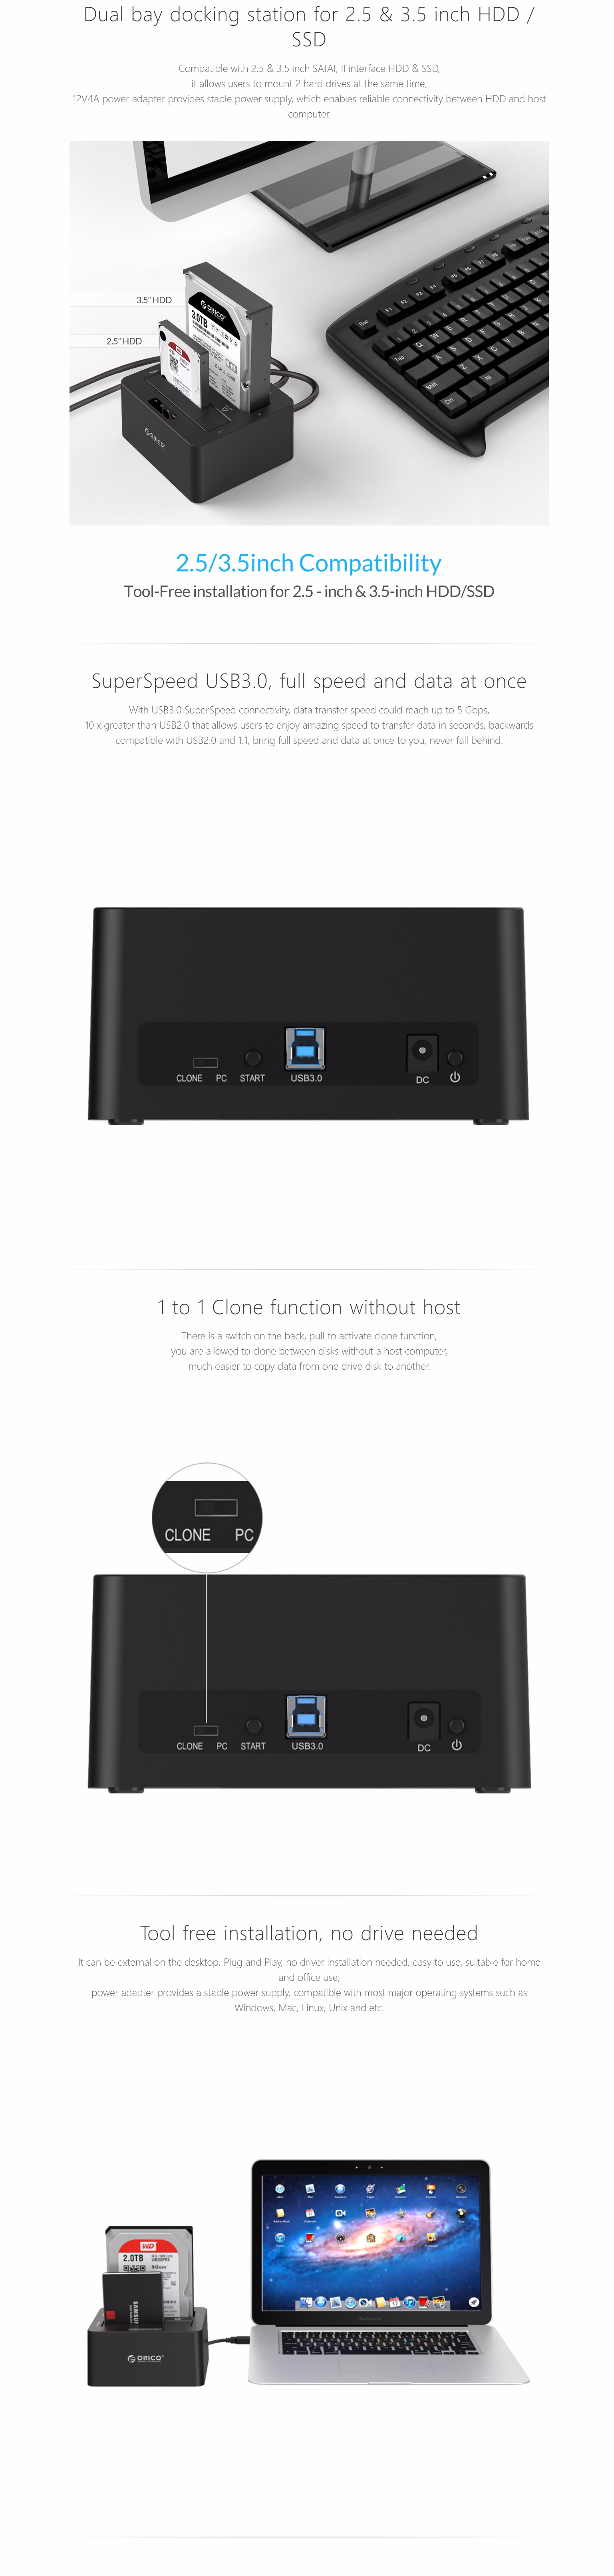 Orico Dual Bay Sata To Usb30 External Hard Drive Docking Station Hdd With Duplicator Clone Function Black 25 35 Superspeed 1 Standalone